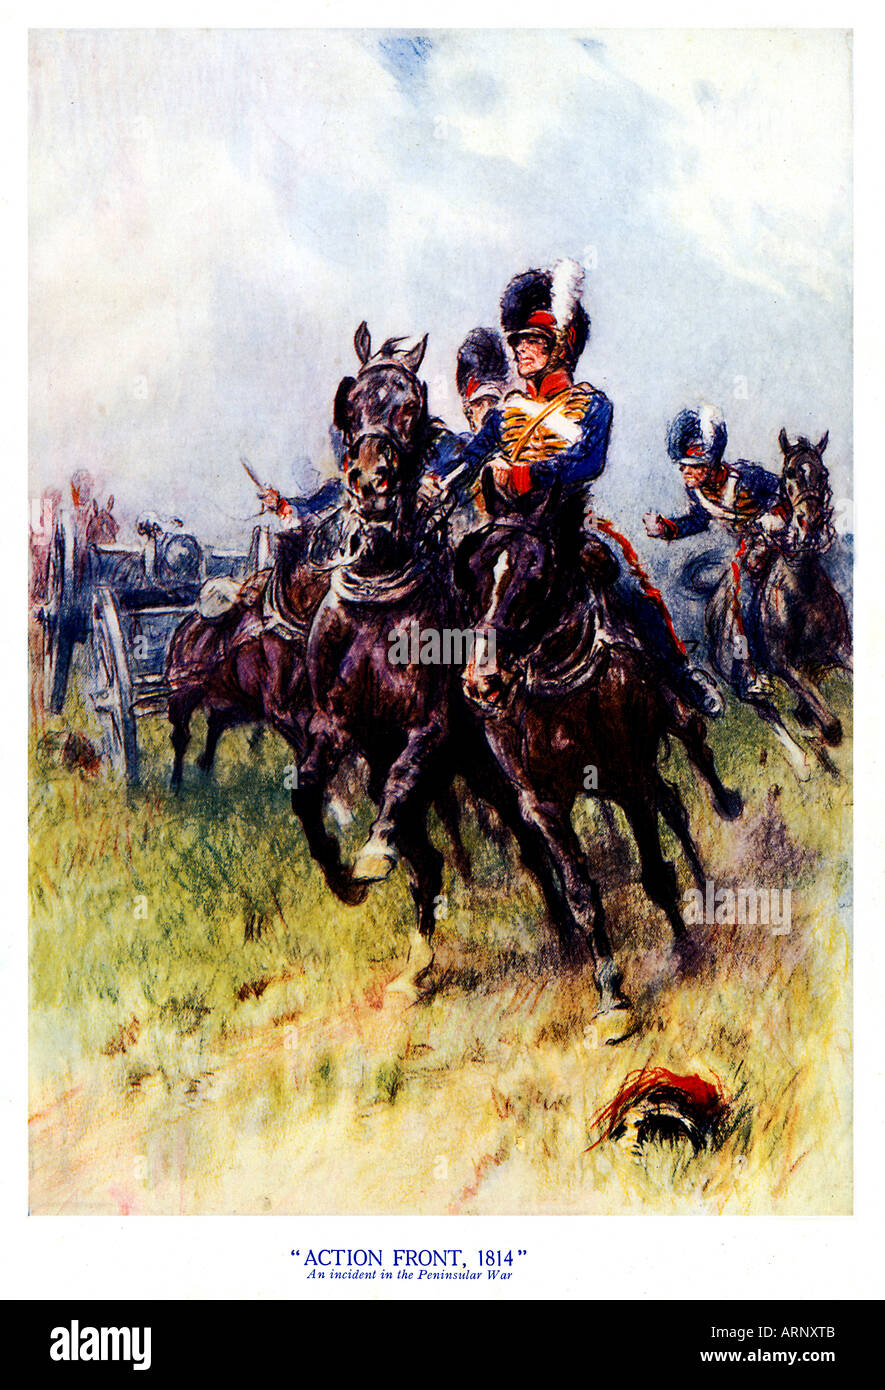 Action Front, 1814, 1930s illustration of an incident in the Peninsular Campaign of the Napoleonic Wars in 1814 - Stock Image